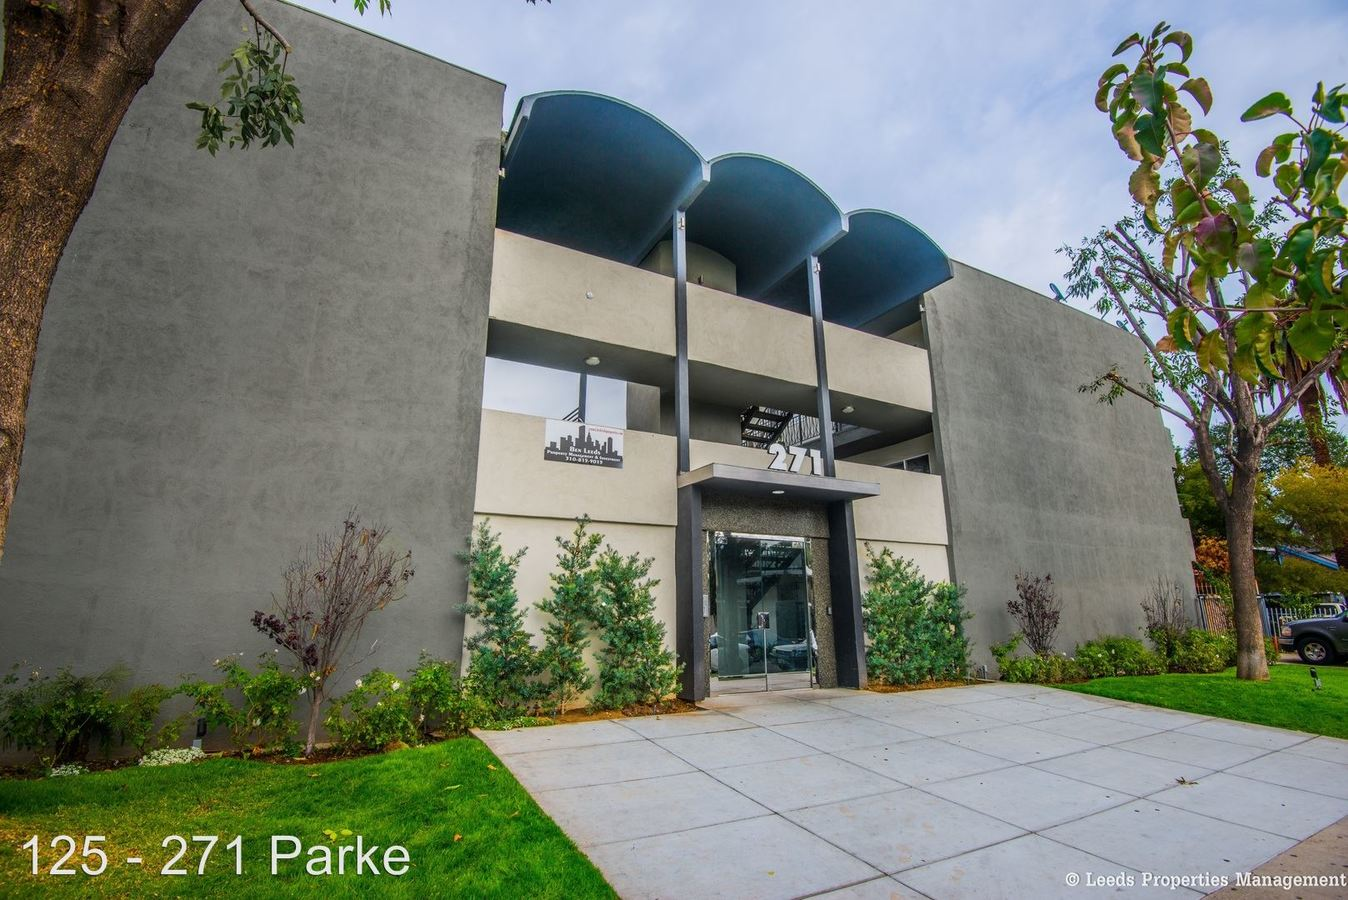 2 Bedrooms 1 Bathroom Apartment for rent at 271 Parke St. in Pasadena, CA